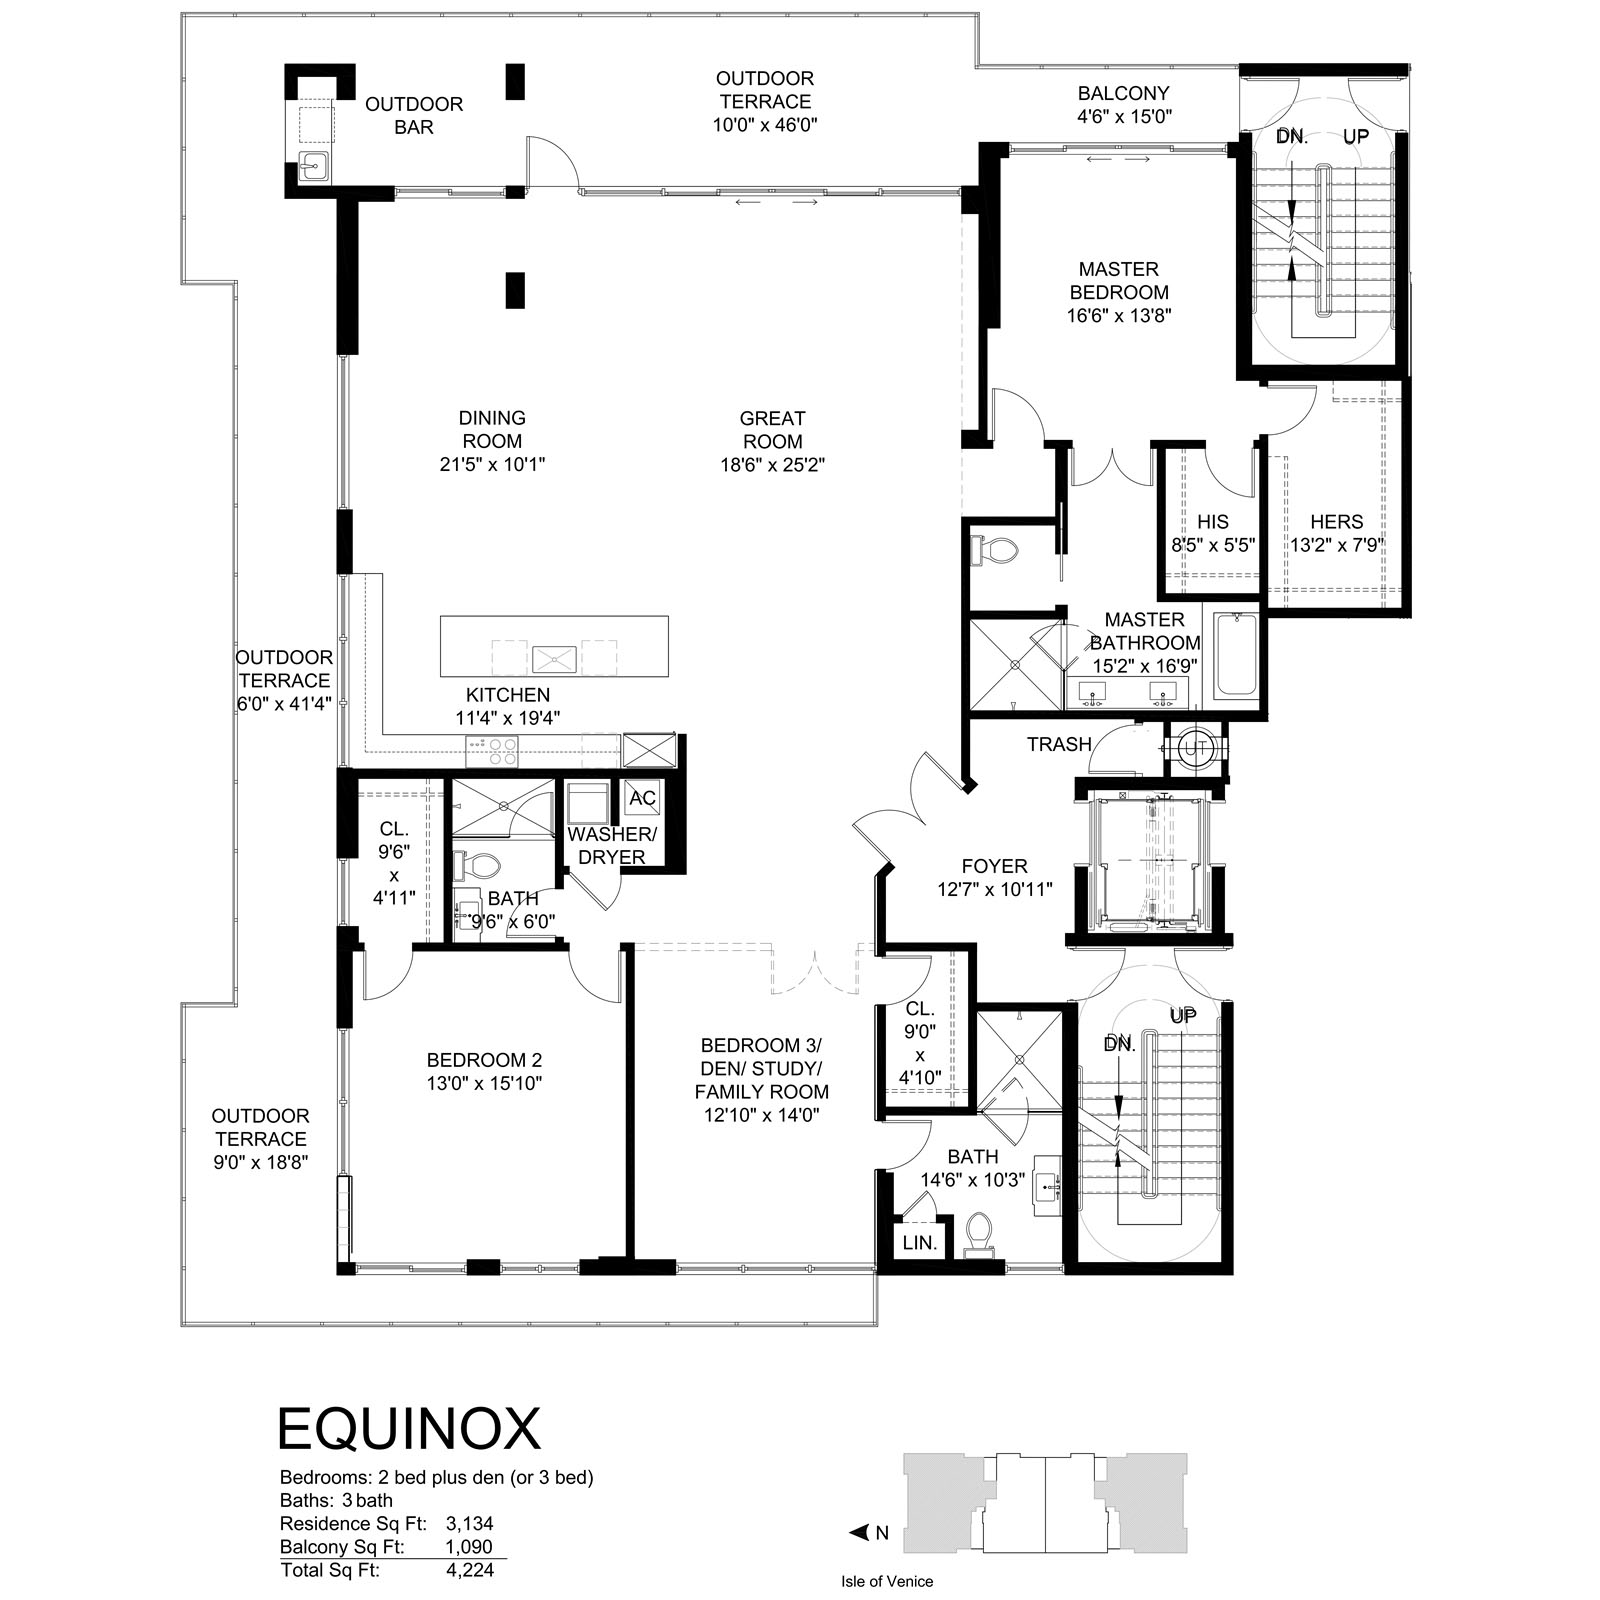 Aqualuna Las Olas - Floorplan 2